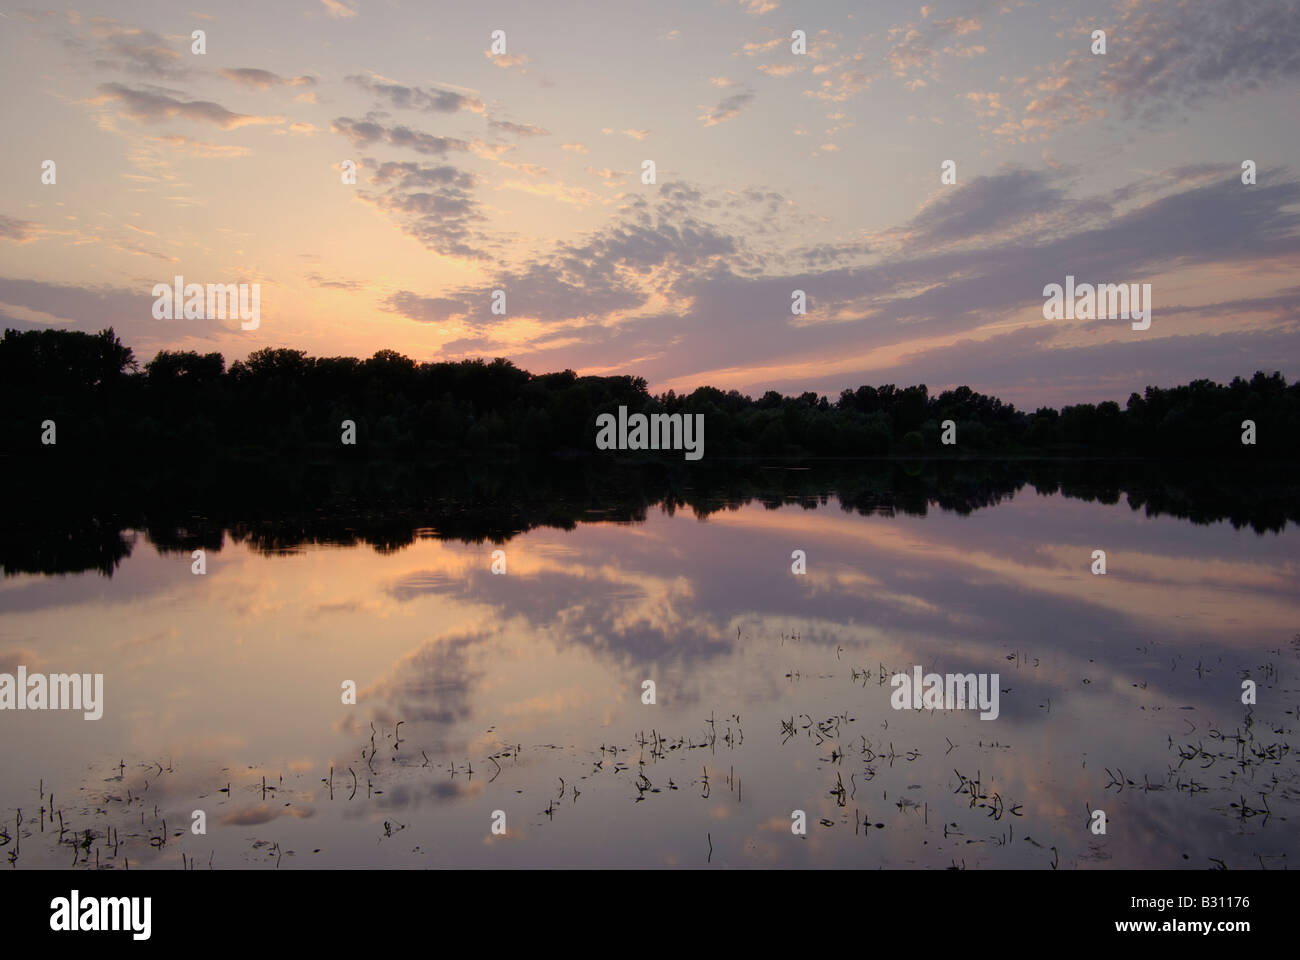 sunset reflected on a lake - Stock Image